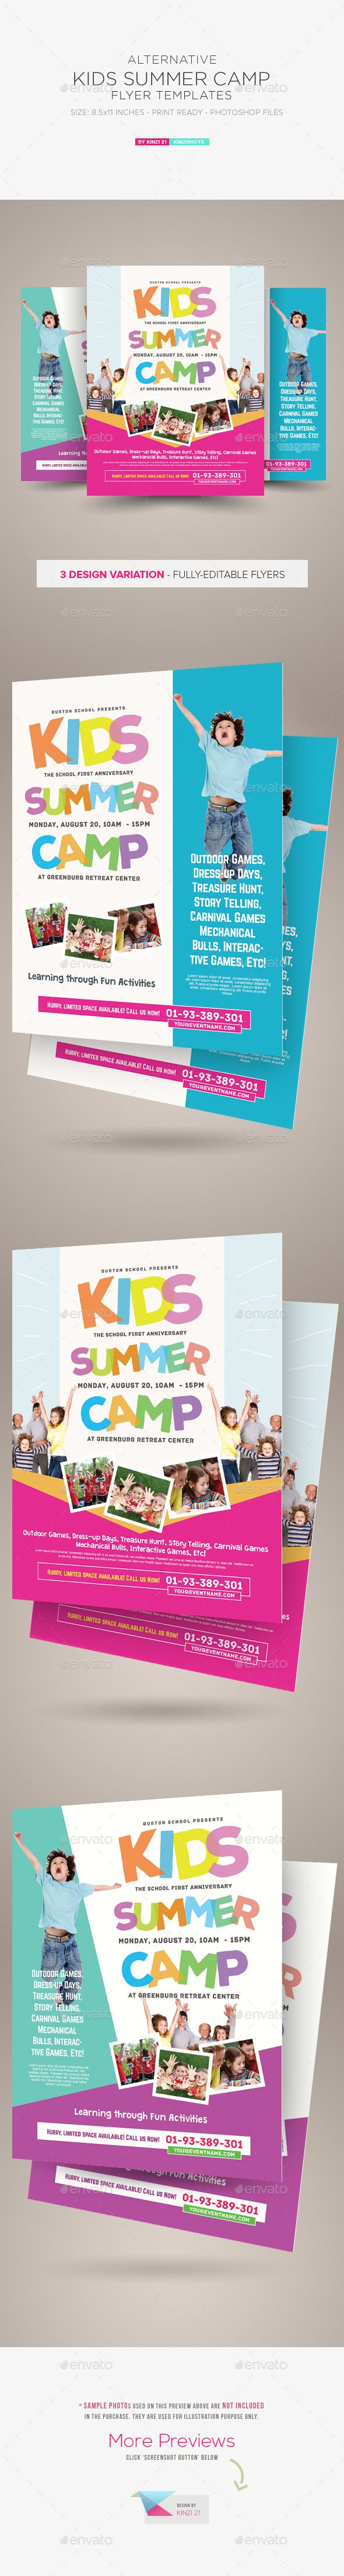 Advertising Poster Templates Delectable Kids Summer Camp Flyer Templates  Flyer Template Template And Camping